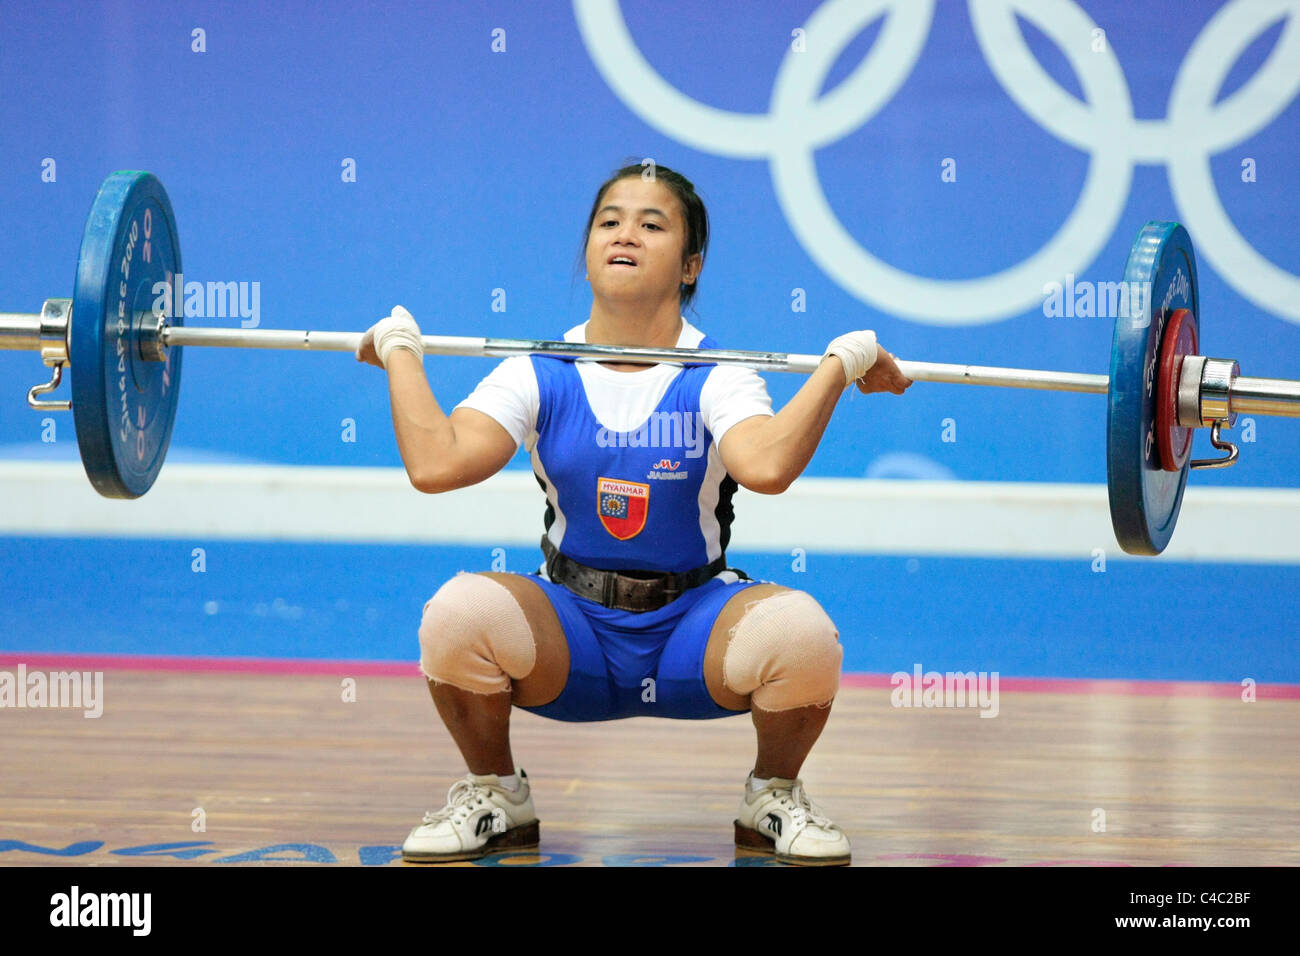 Myanmar's Kay Khine Khine in action during her clean and jerk routine. - Stock Image